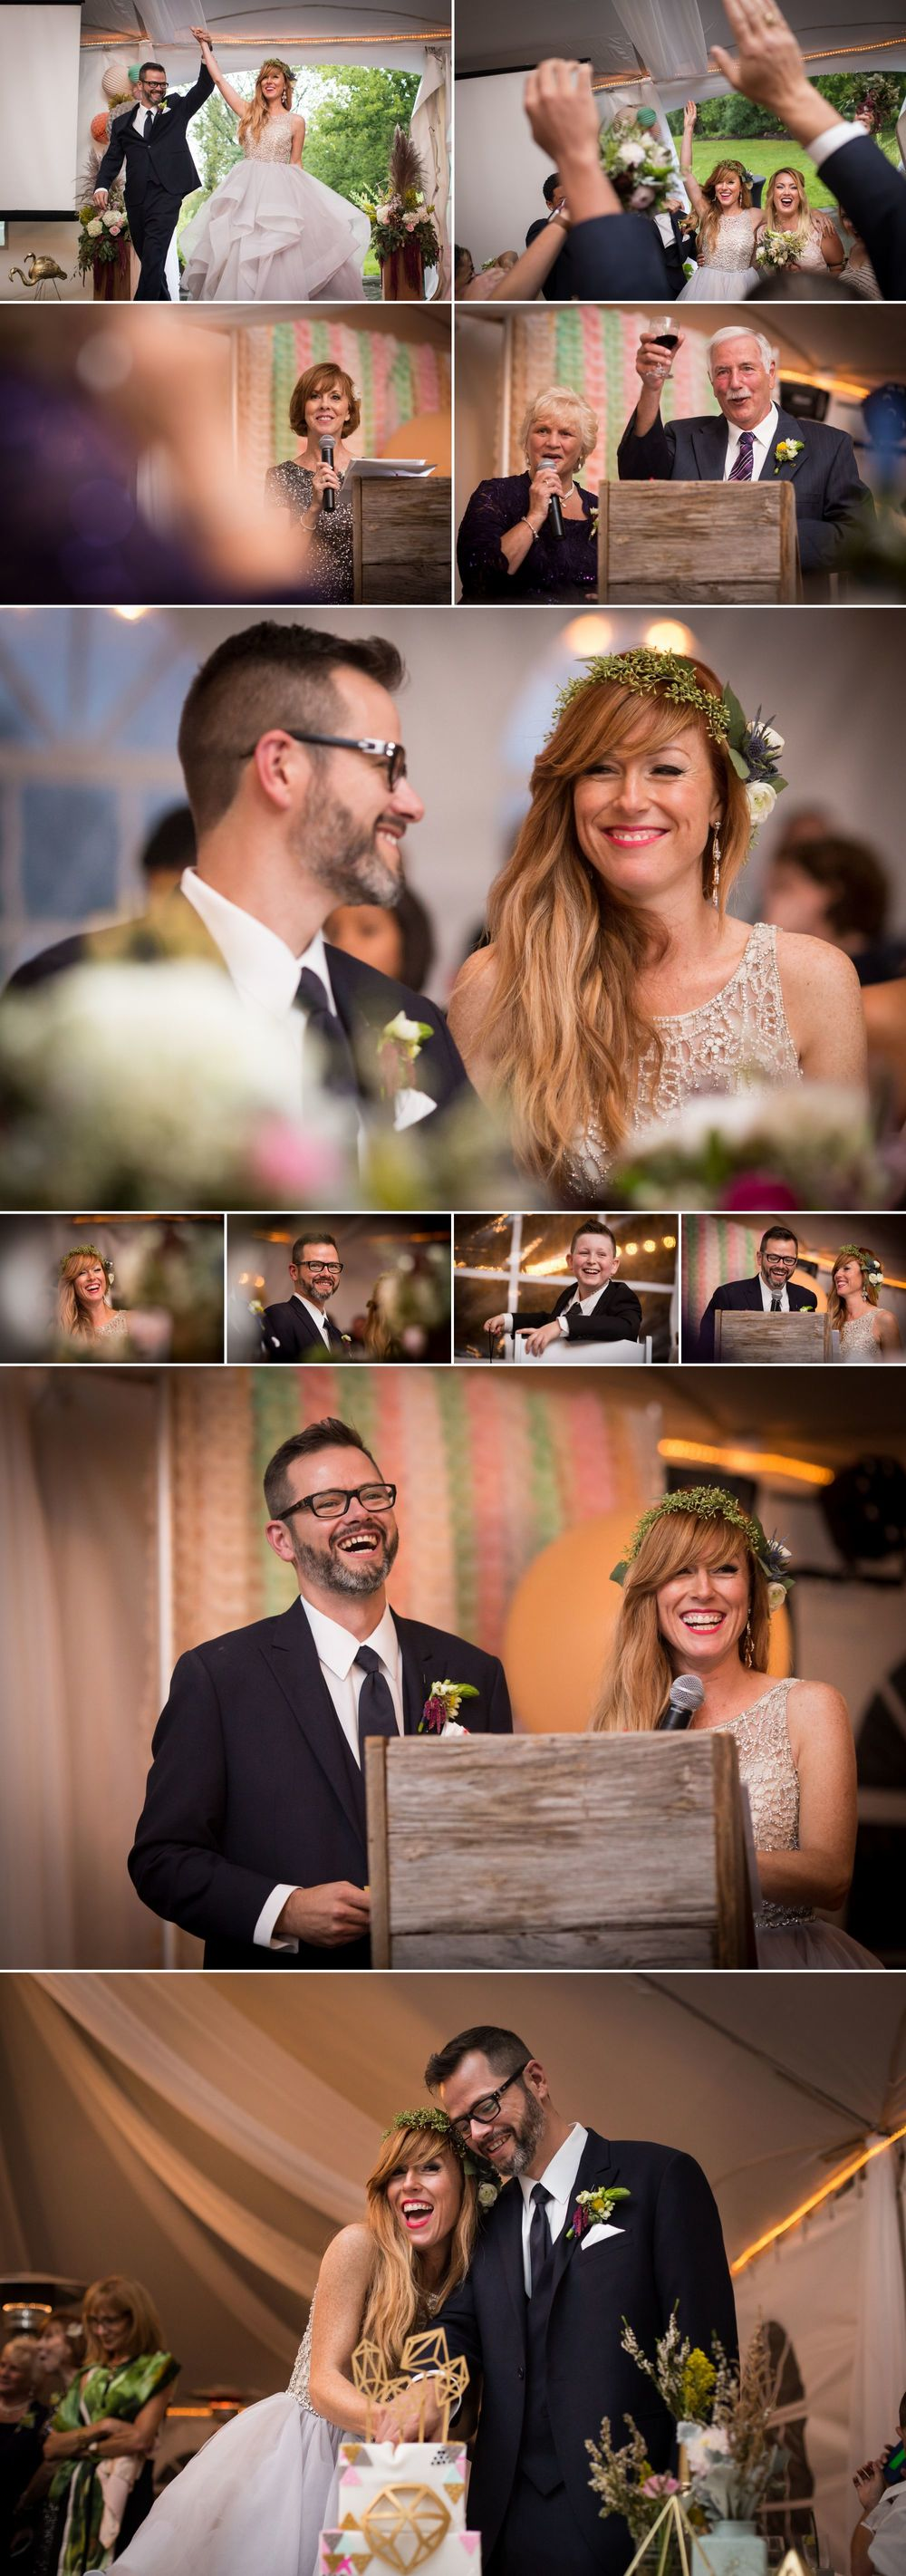 Wedding reception photos at Stonefields Heritage Farm